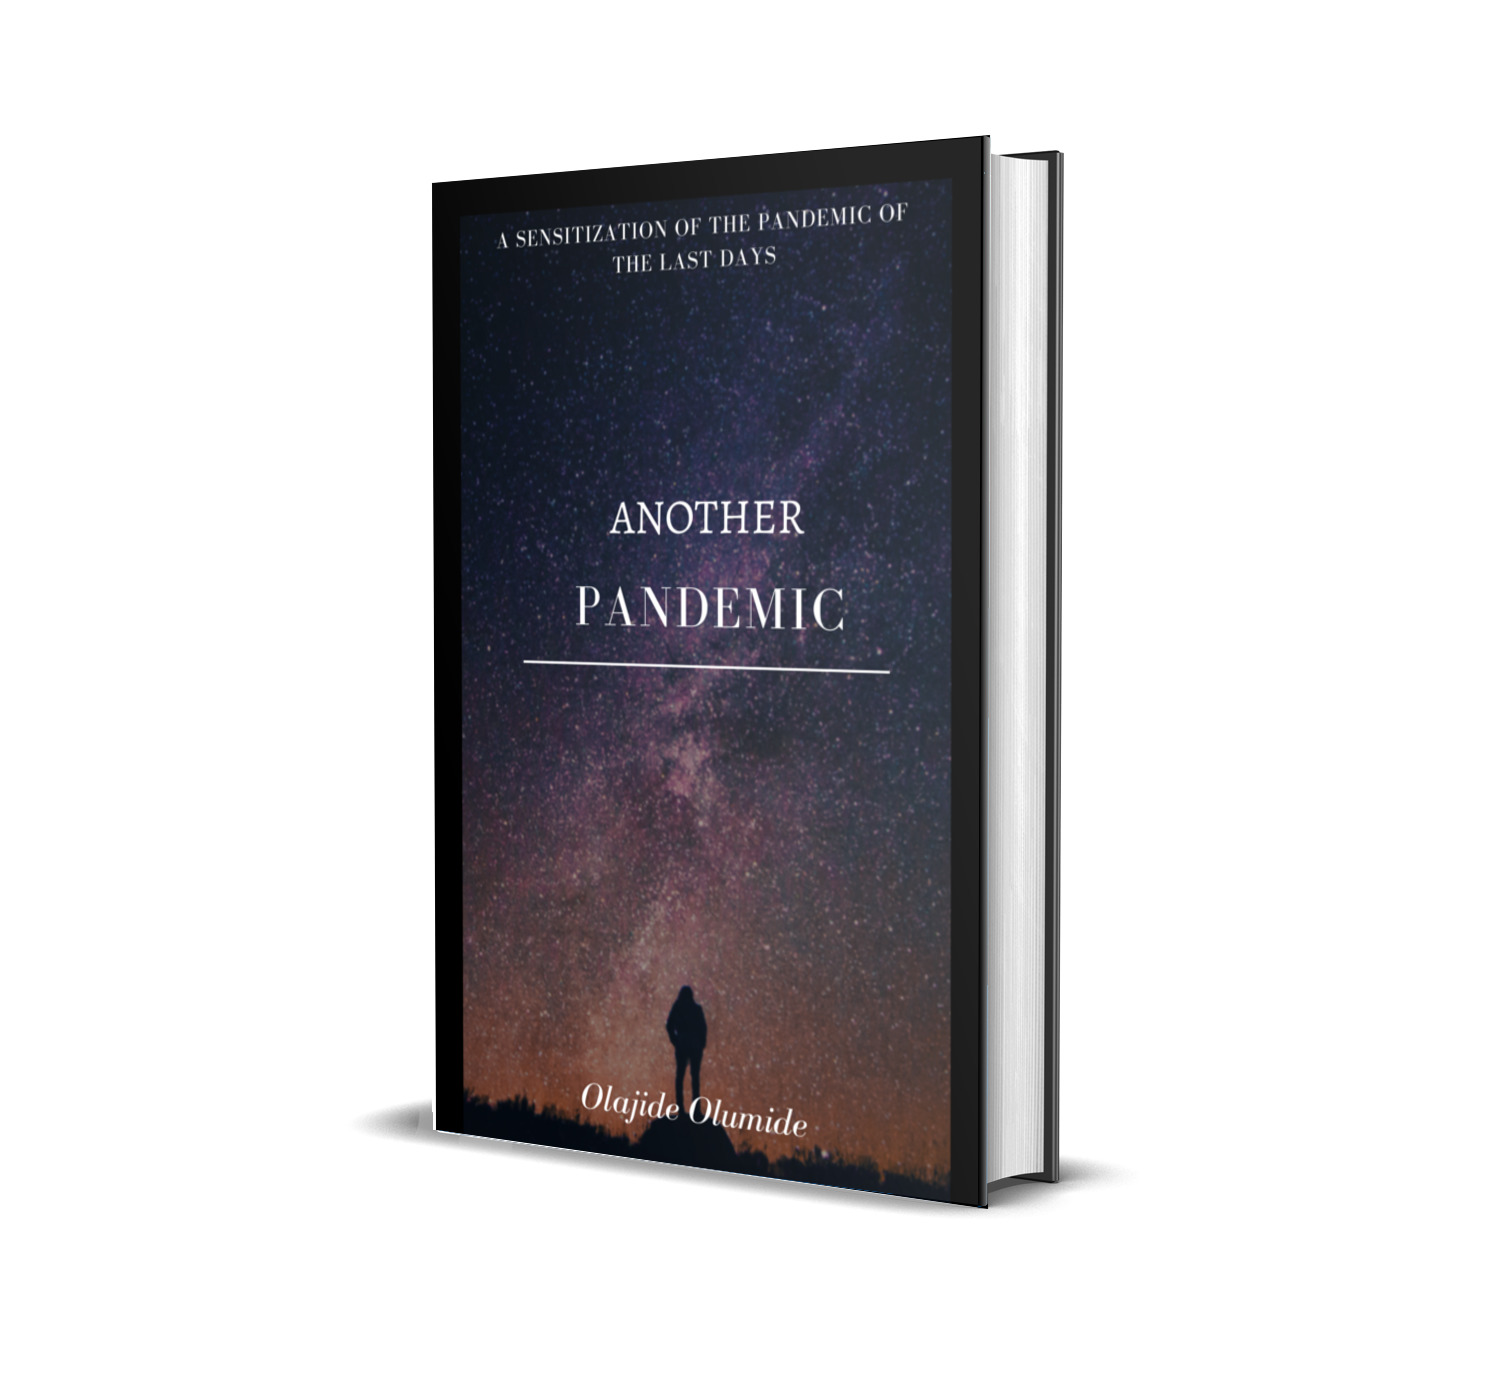 What are you Waiting For? Here's how to Purchase Olumide Olajide's New Book on a Sensitization of the Pandemic of the Last Days